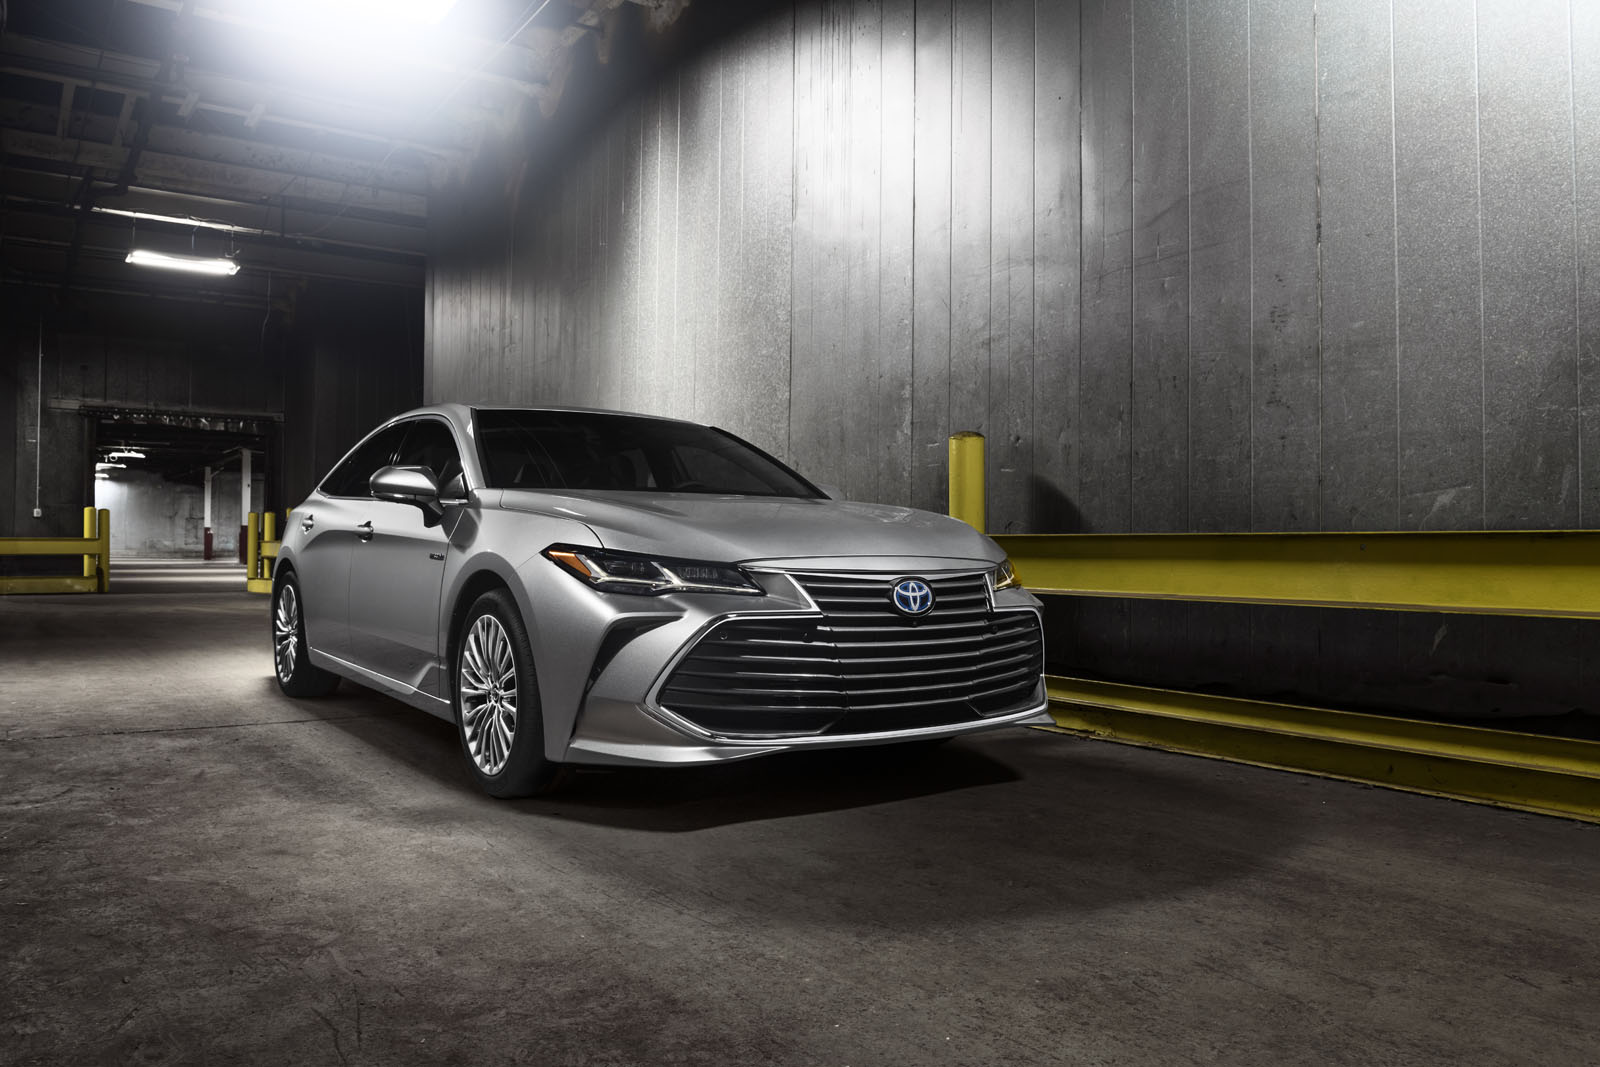 all new camry 2018 interior commercial premium style and luxury - all-new 2019 toyota avalon ...